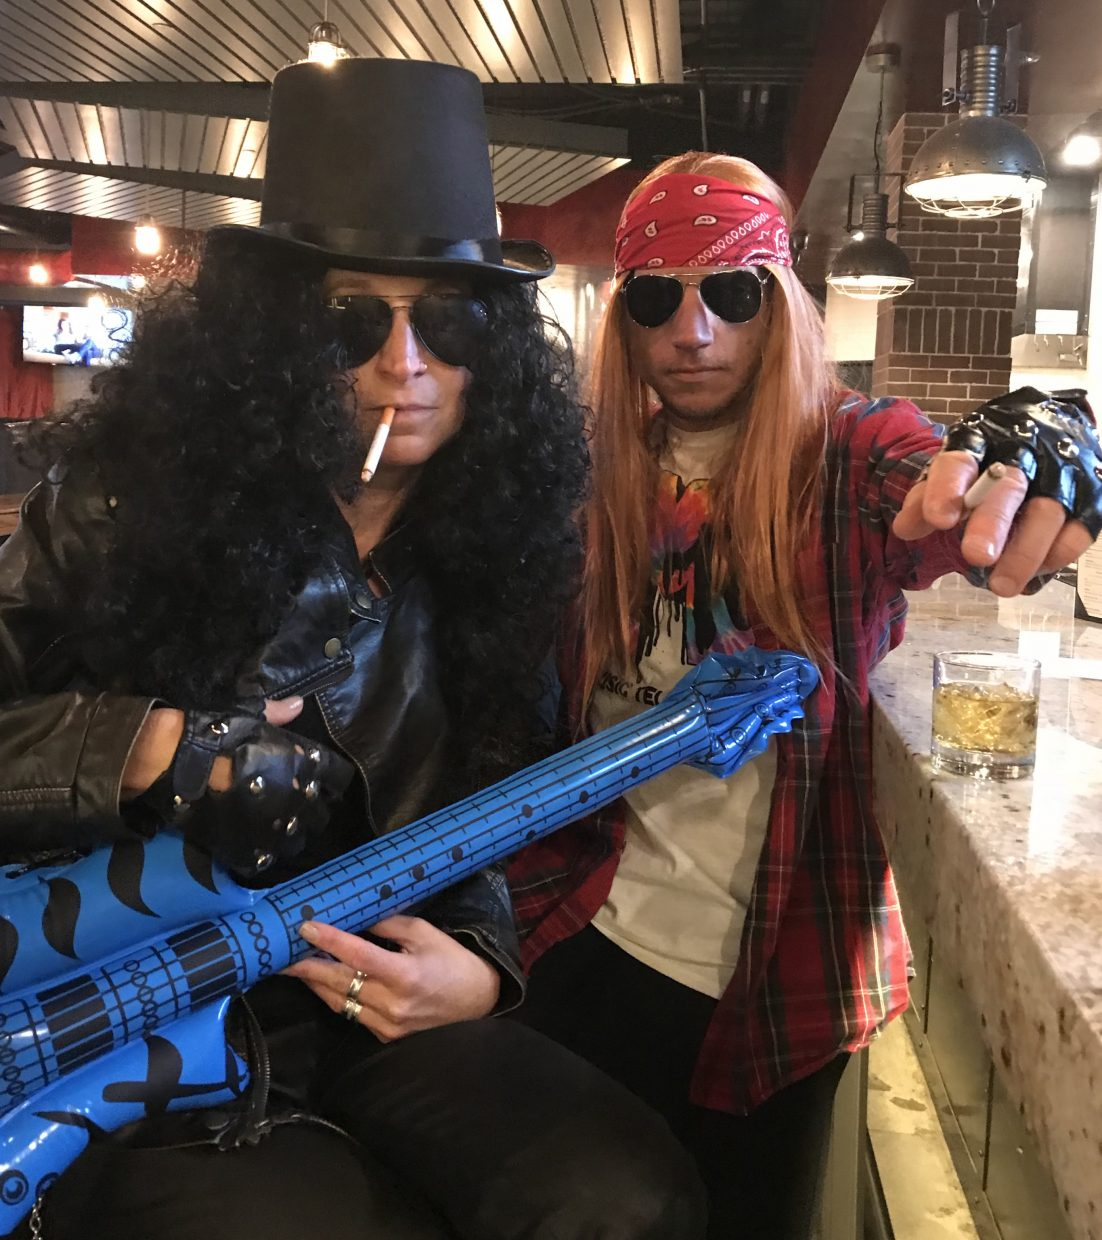 Two rockstars hang out to celebrate Halloween.